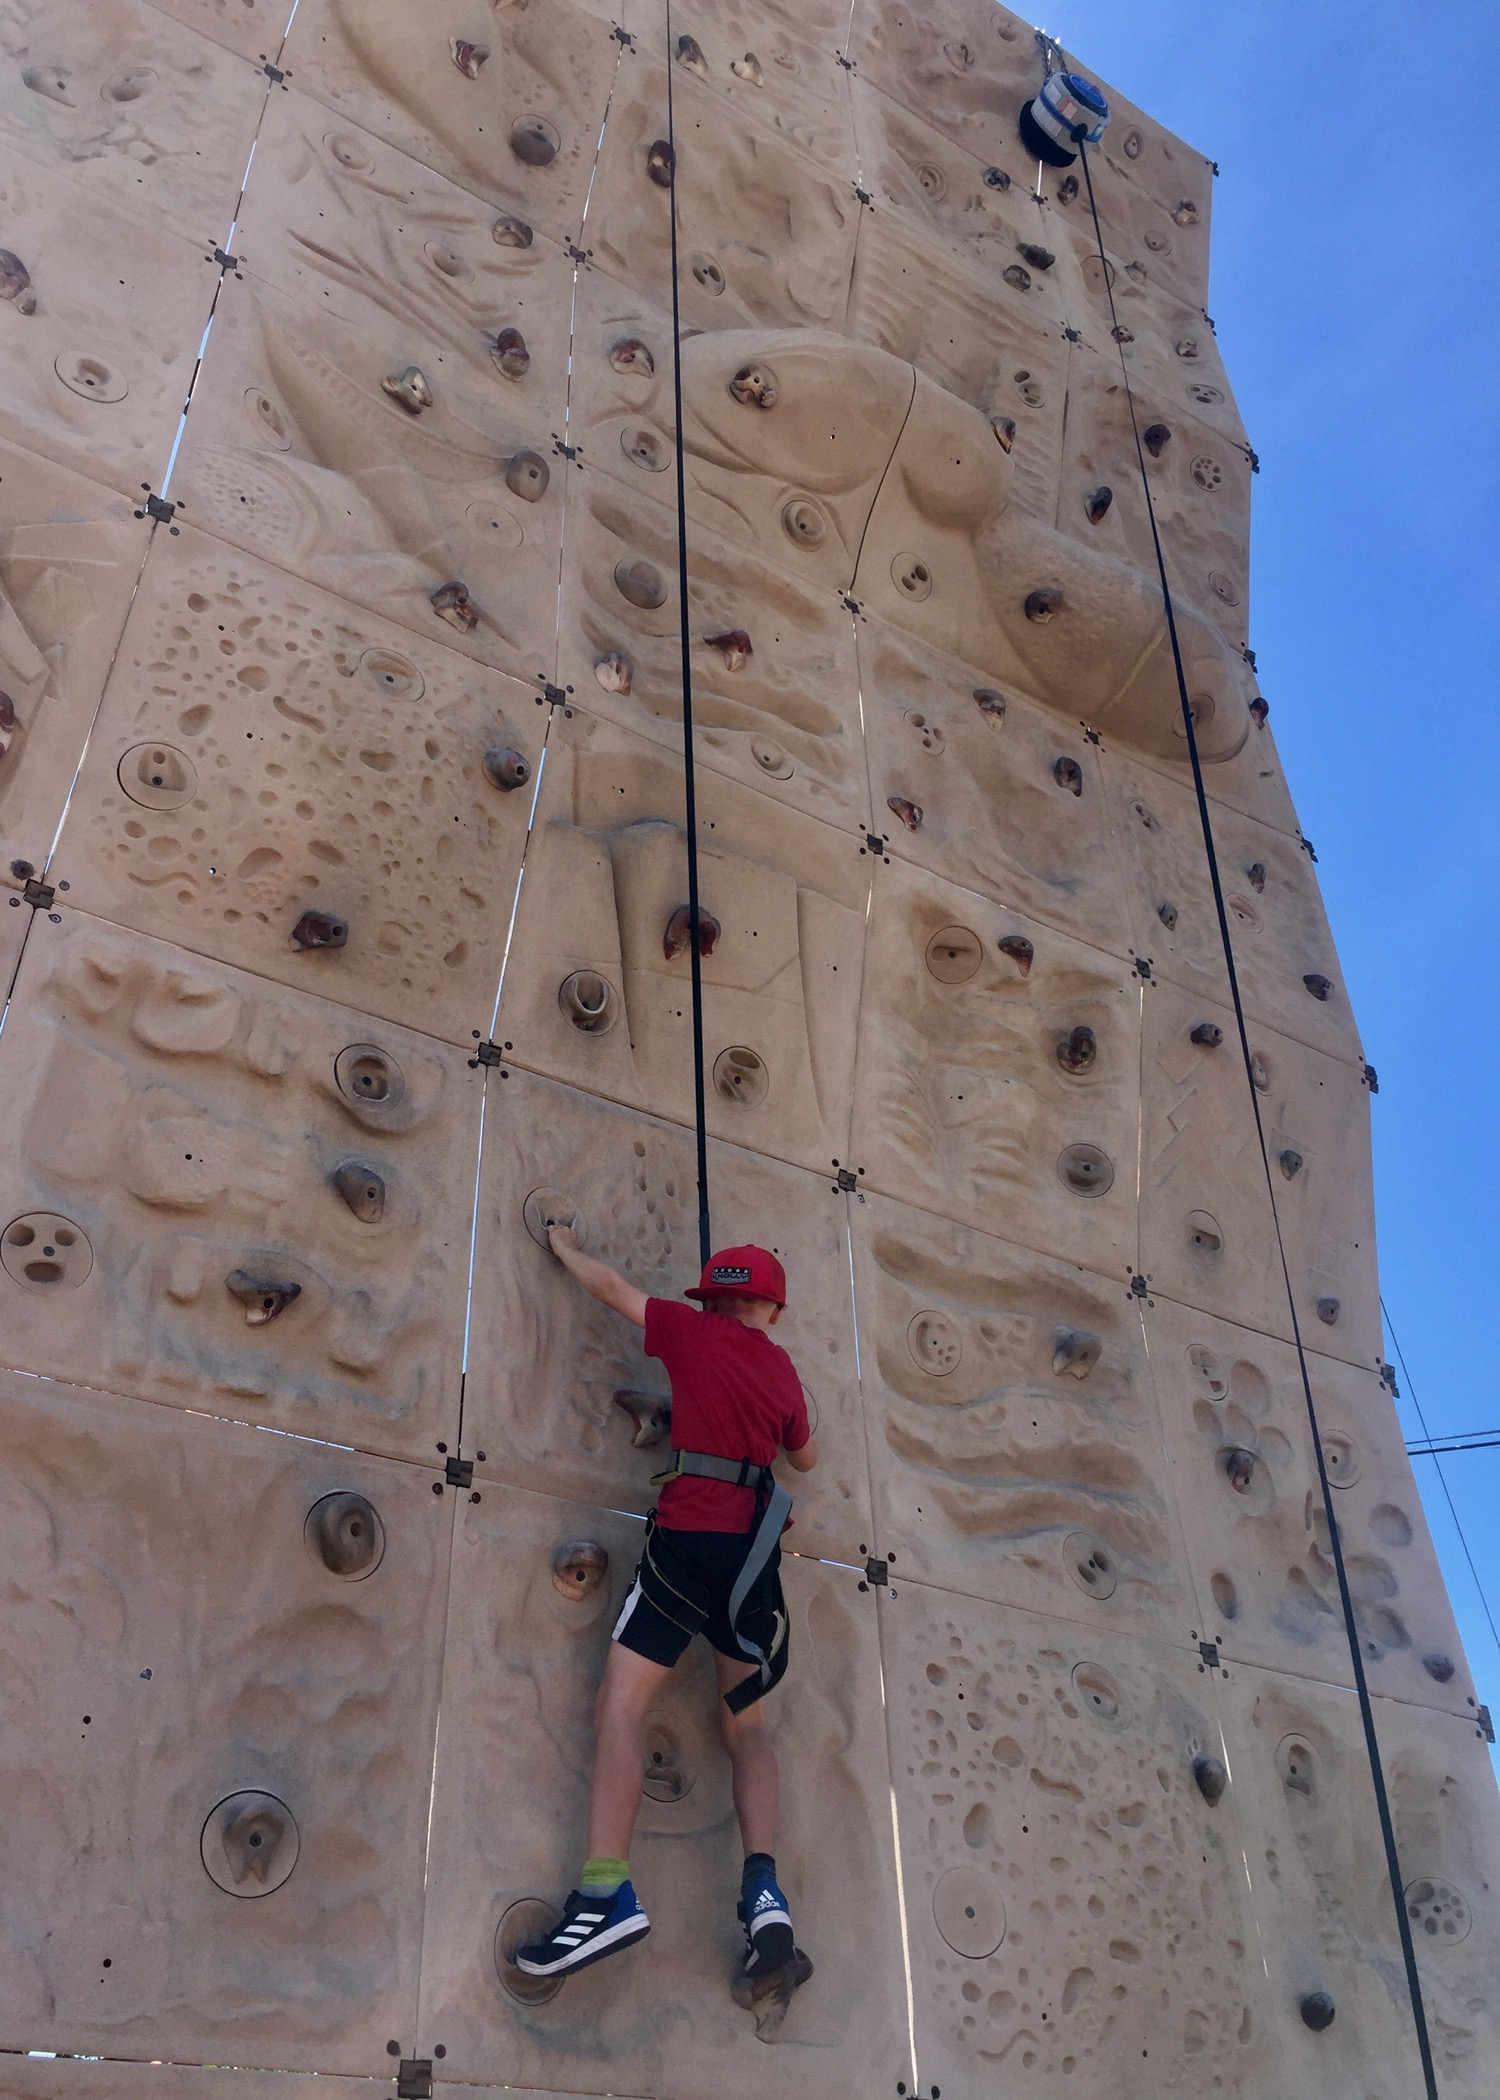 Ethan did amazing on the rock wall